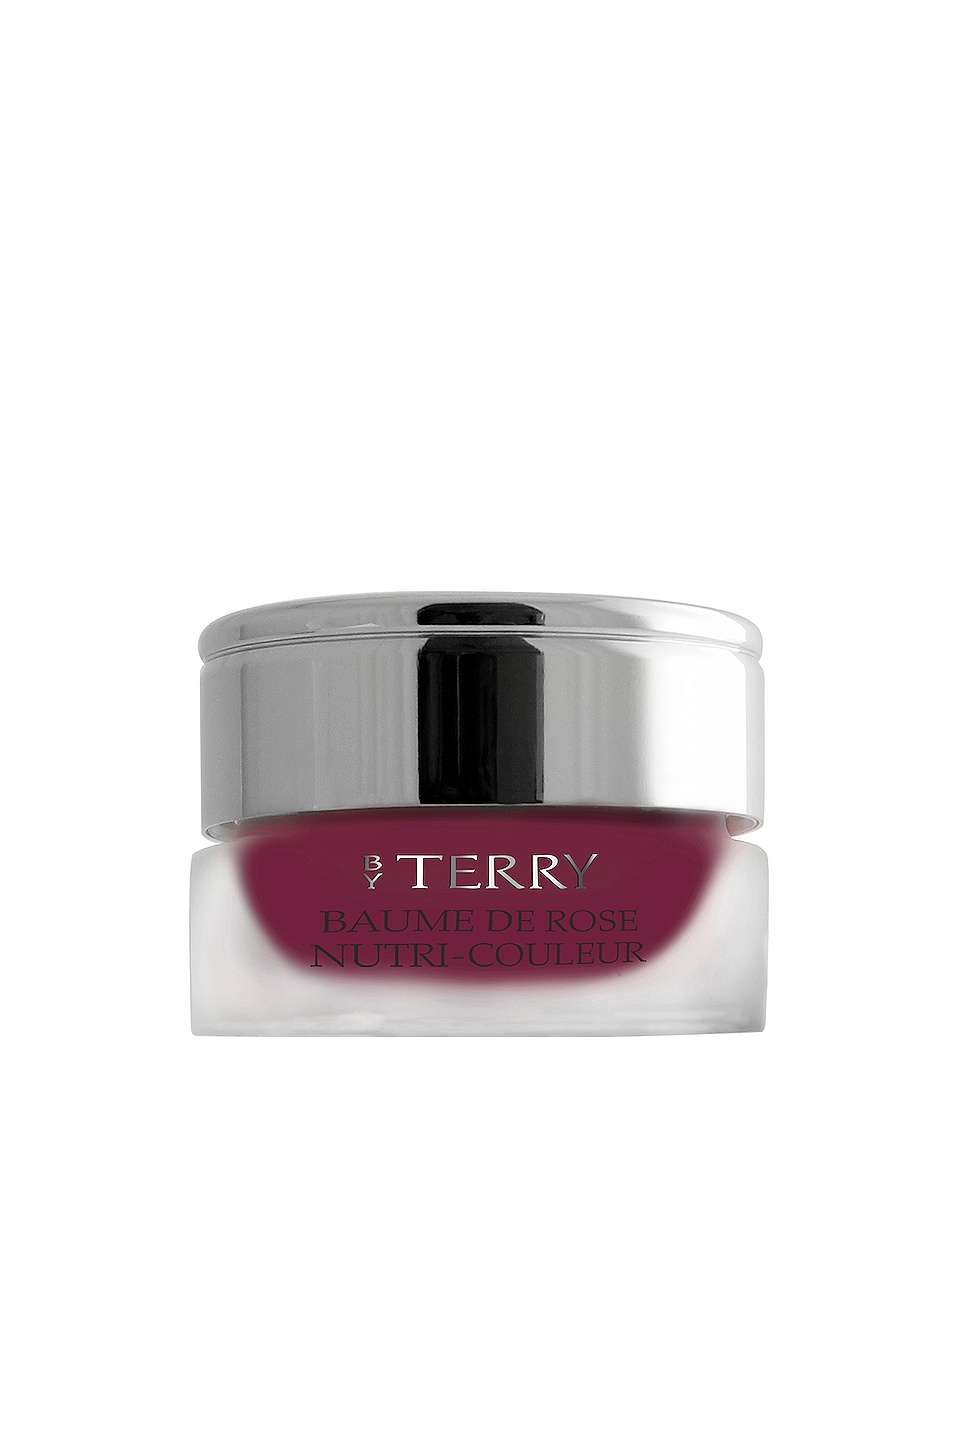 By Terry Baume De Rose Nutri Couleur in Fig Fiction